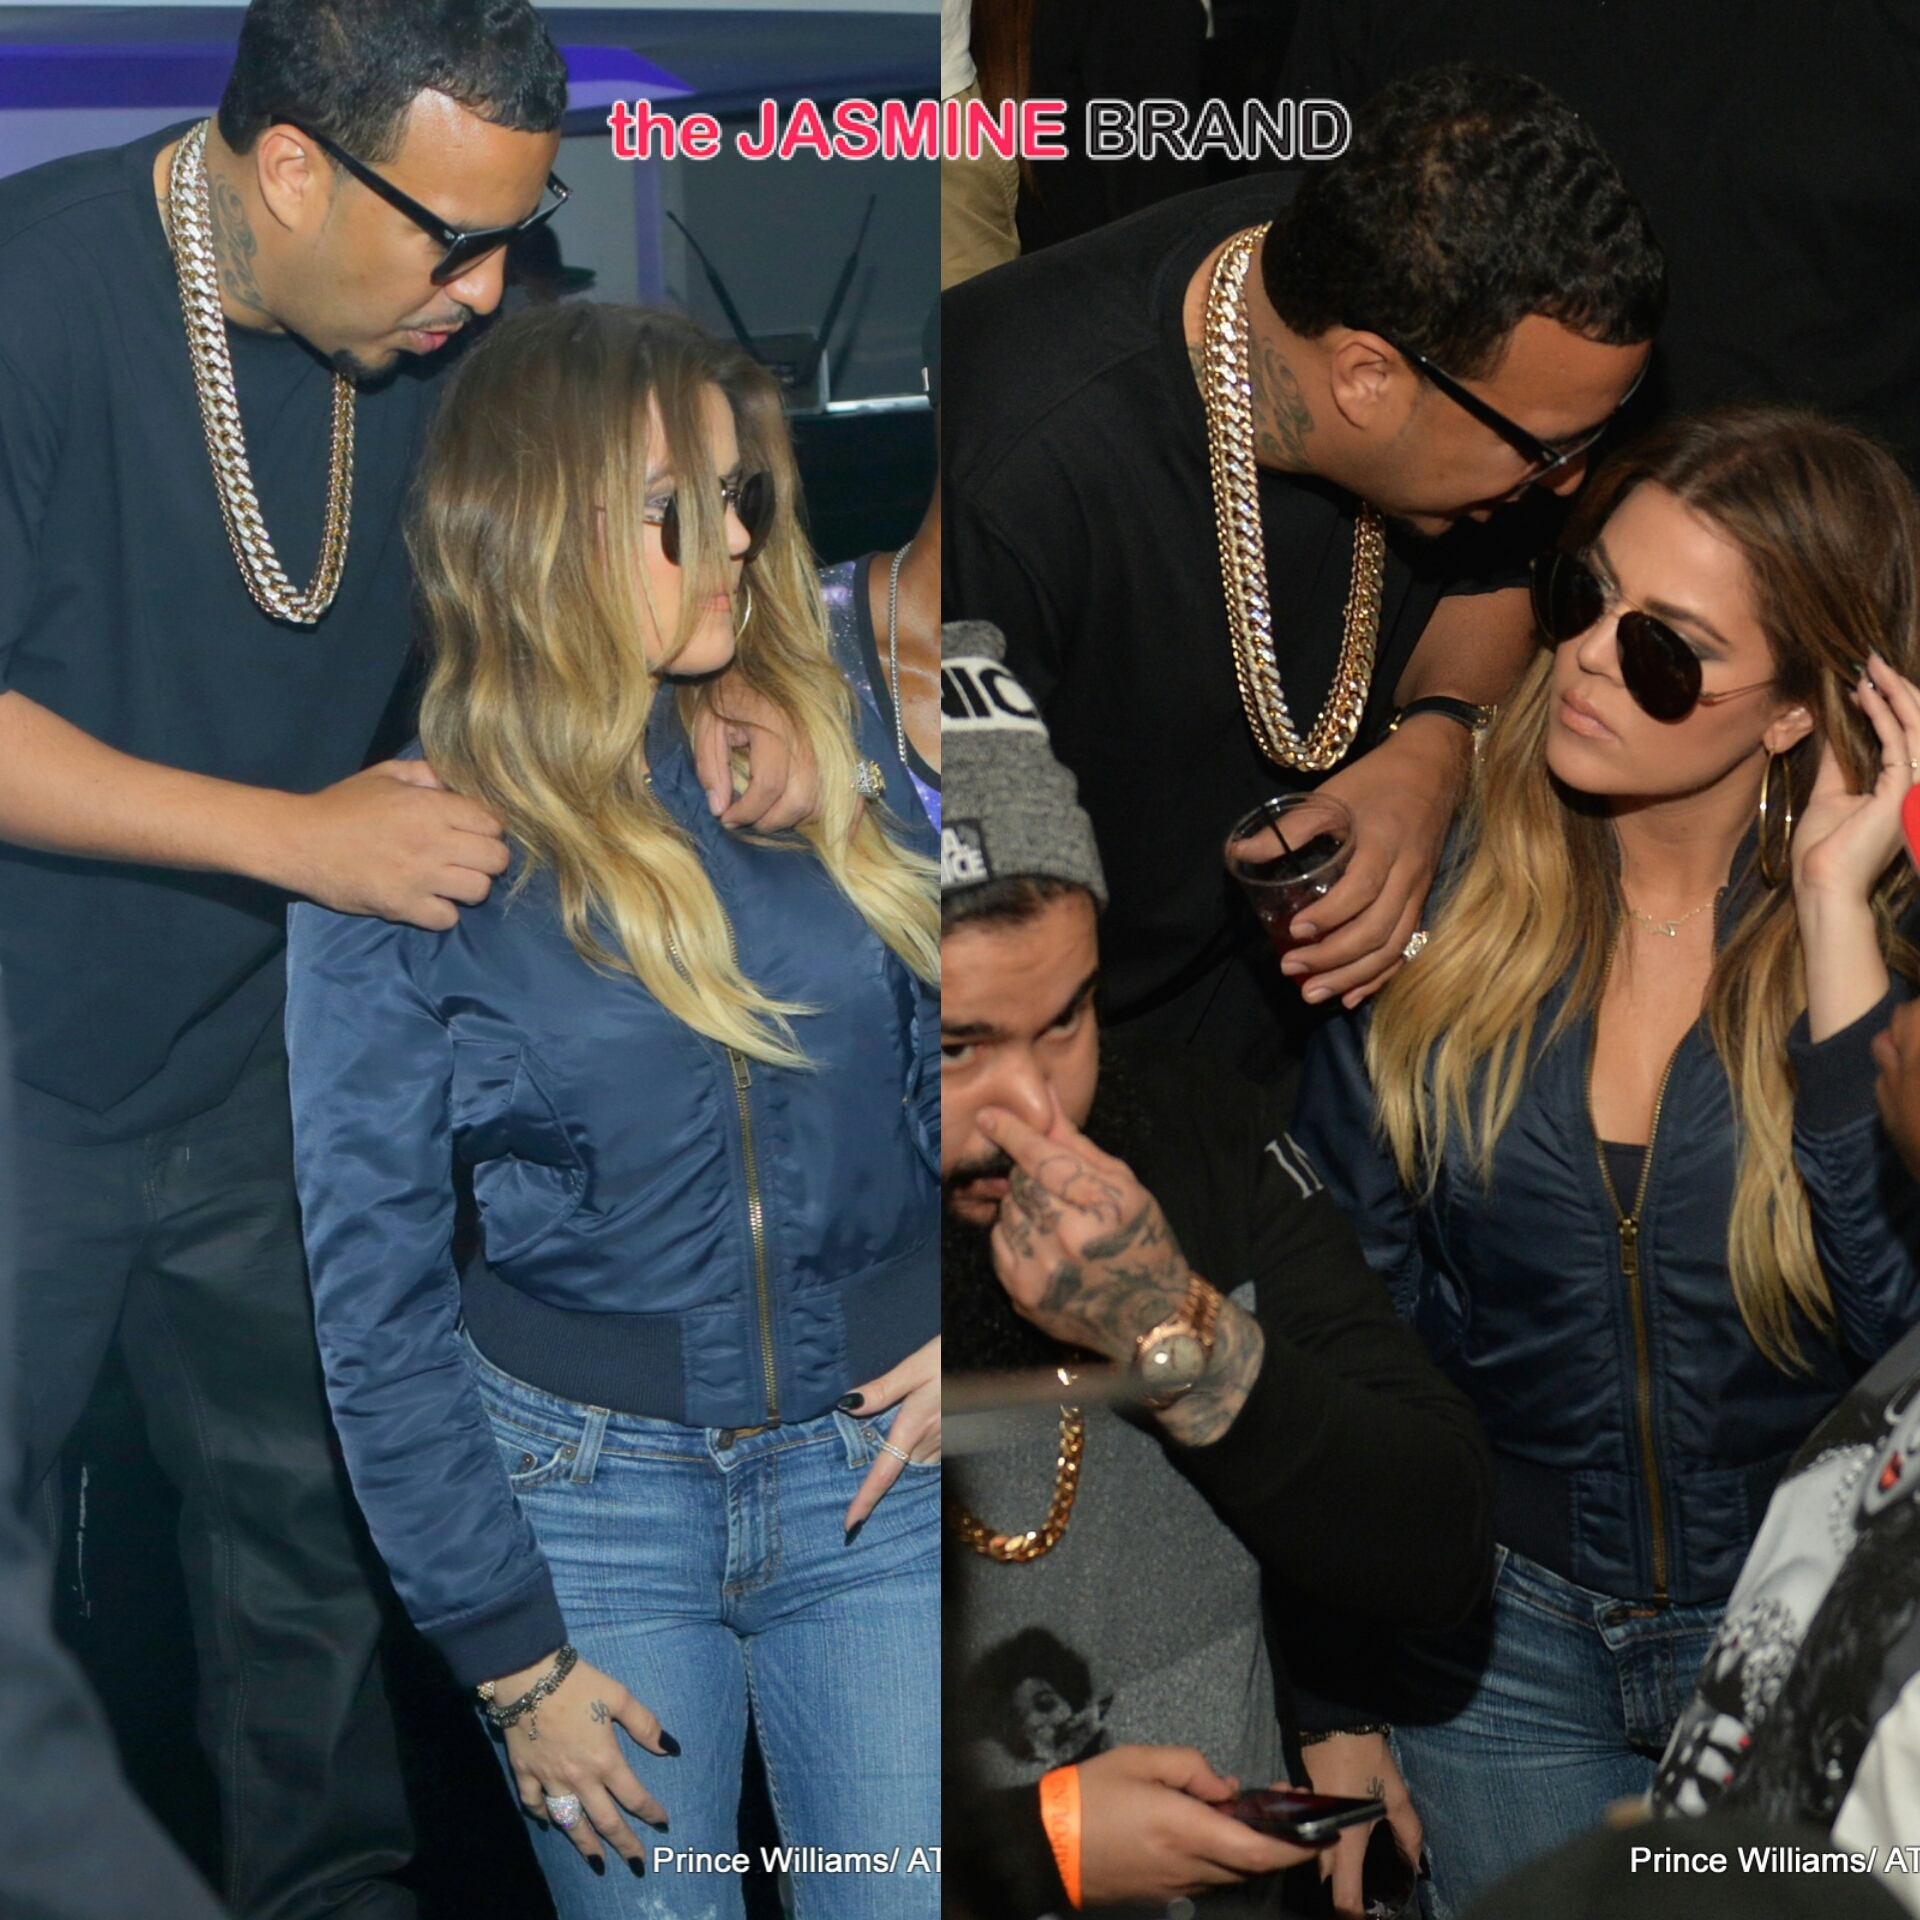 french montana-khloe kardashian-party atlanta compound-the jasmine brand